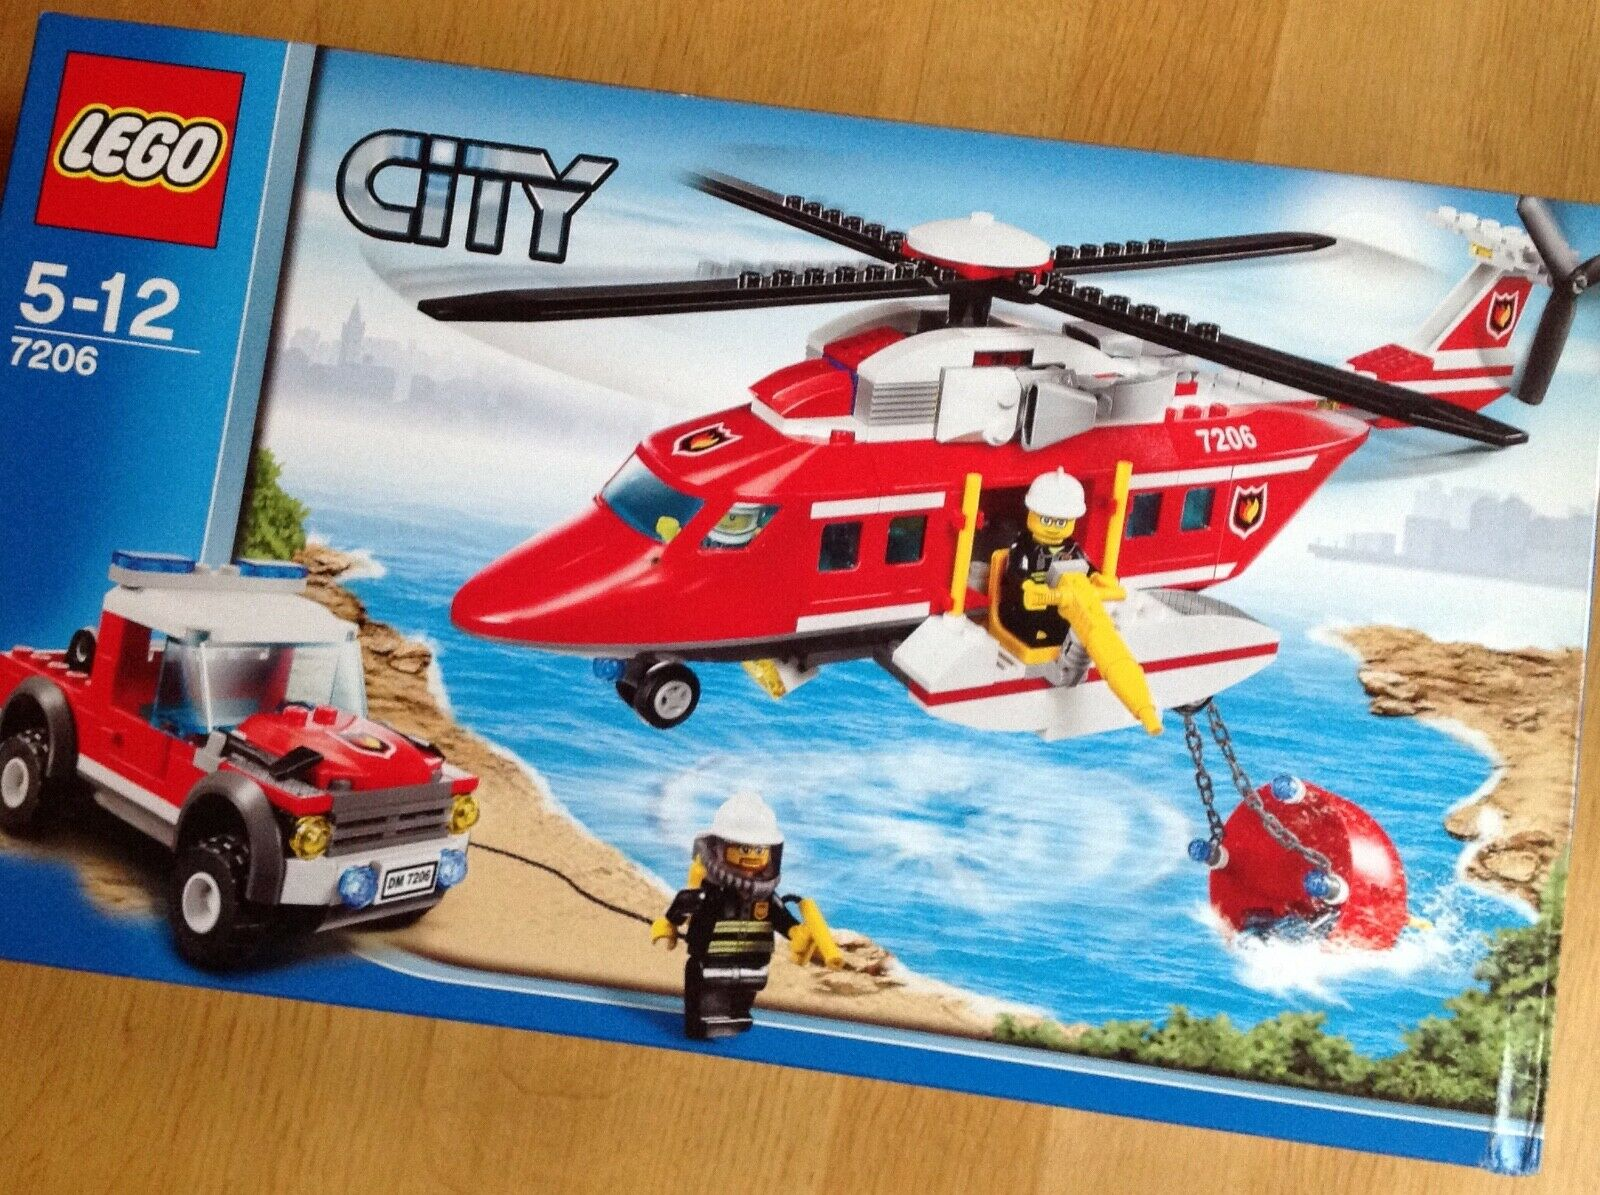 LEGO CITY 7206 HELICOPTER & FIRE JEEP SET - NOW RETIRED - BRAND NEW & UNOPENED